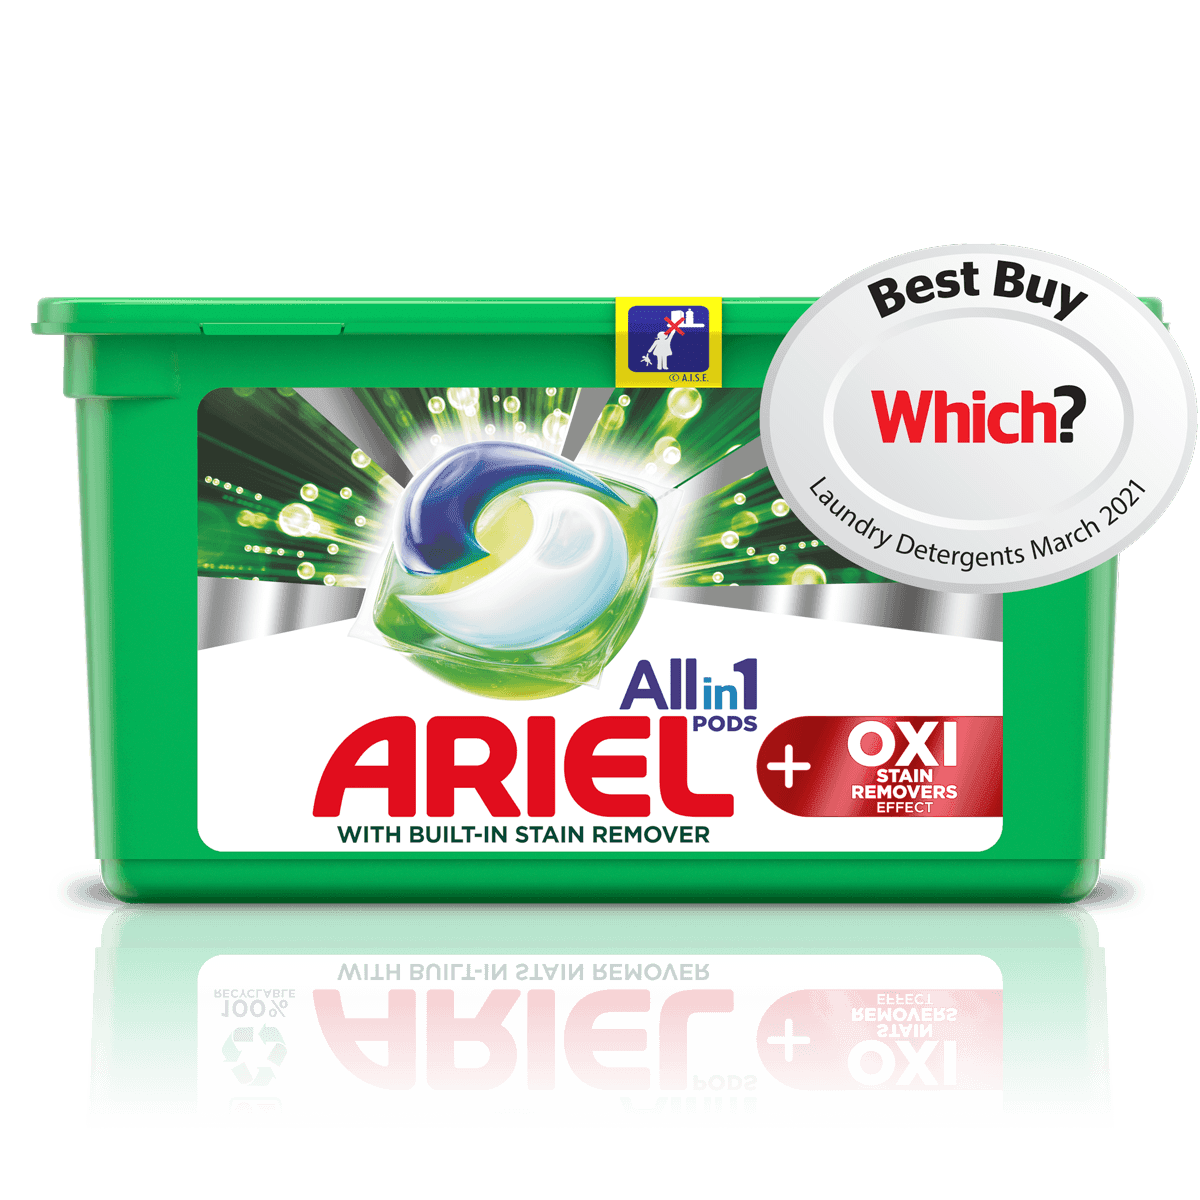 Ariel All-in-1 PODS +OXI Stain Removers Effect